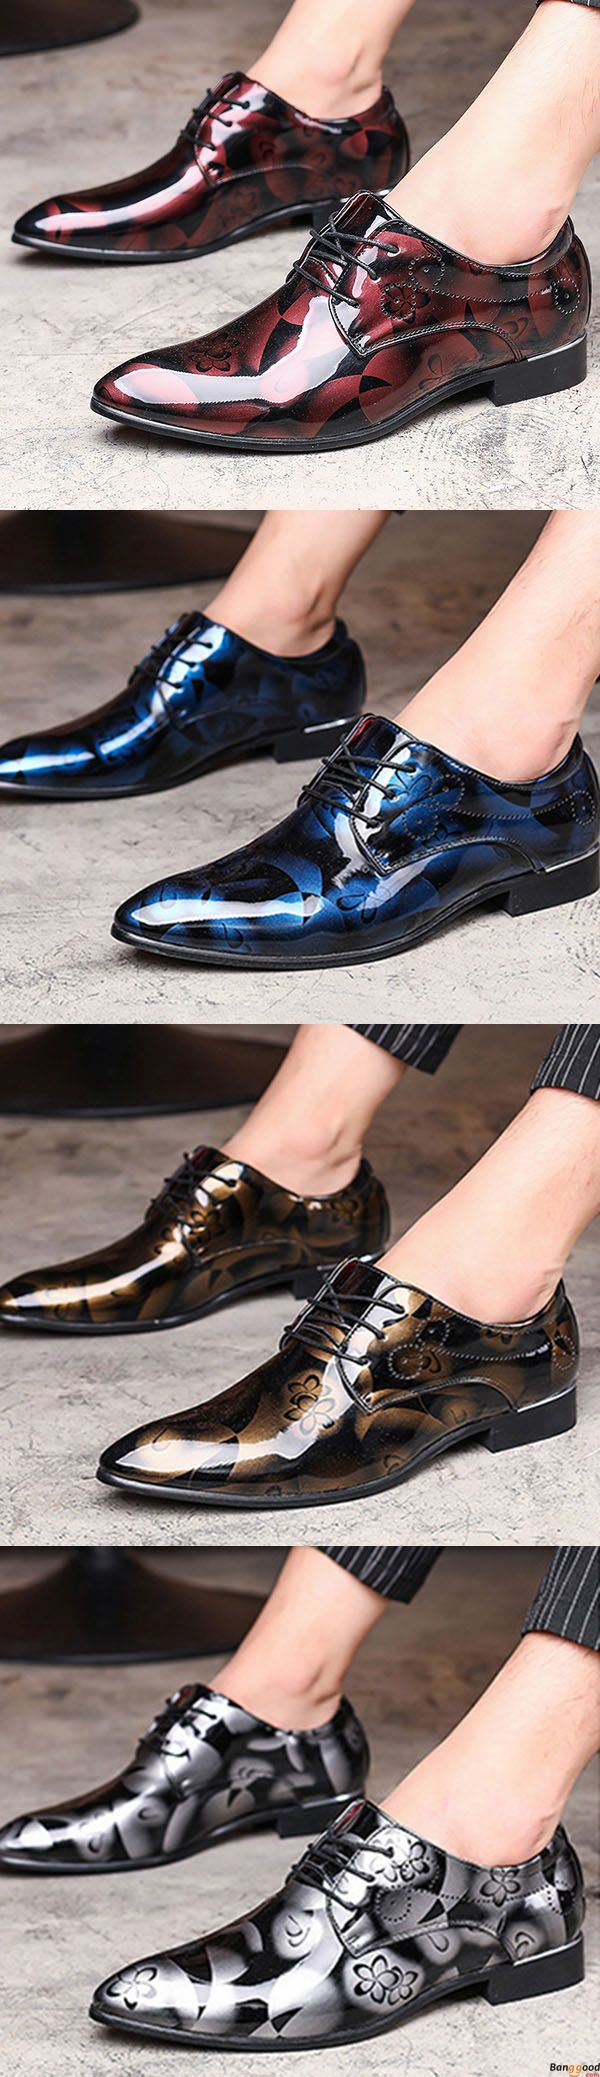 Large Size Comfy Leather Business Formal Shoes Pattern Pointed Toe Shoes for Men. US$44.03+ Free Shipping. Men's fashion style must have. Shop at banggood with affordable price.